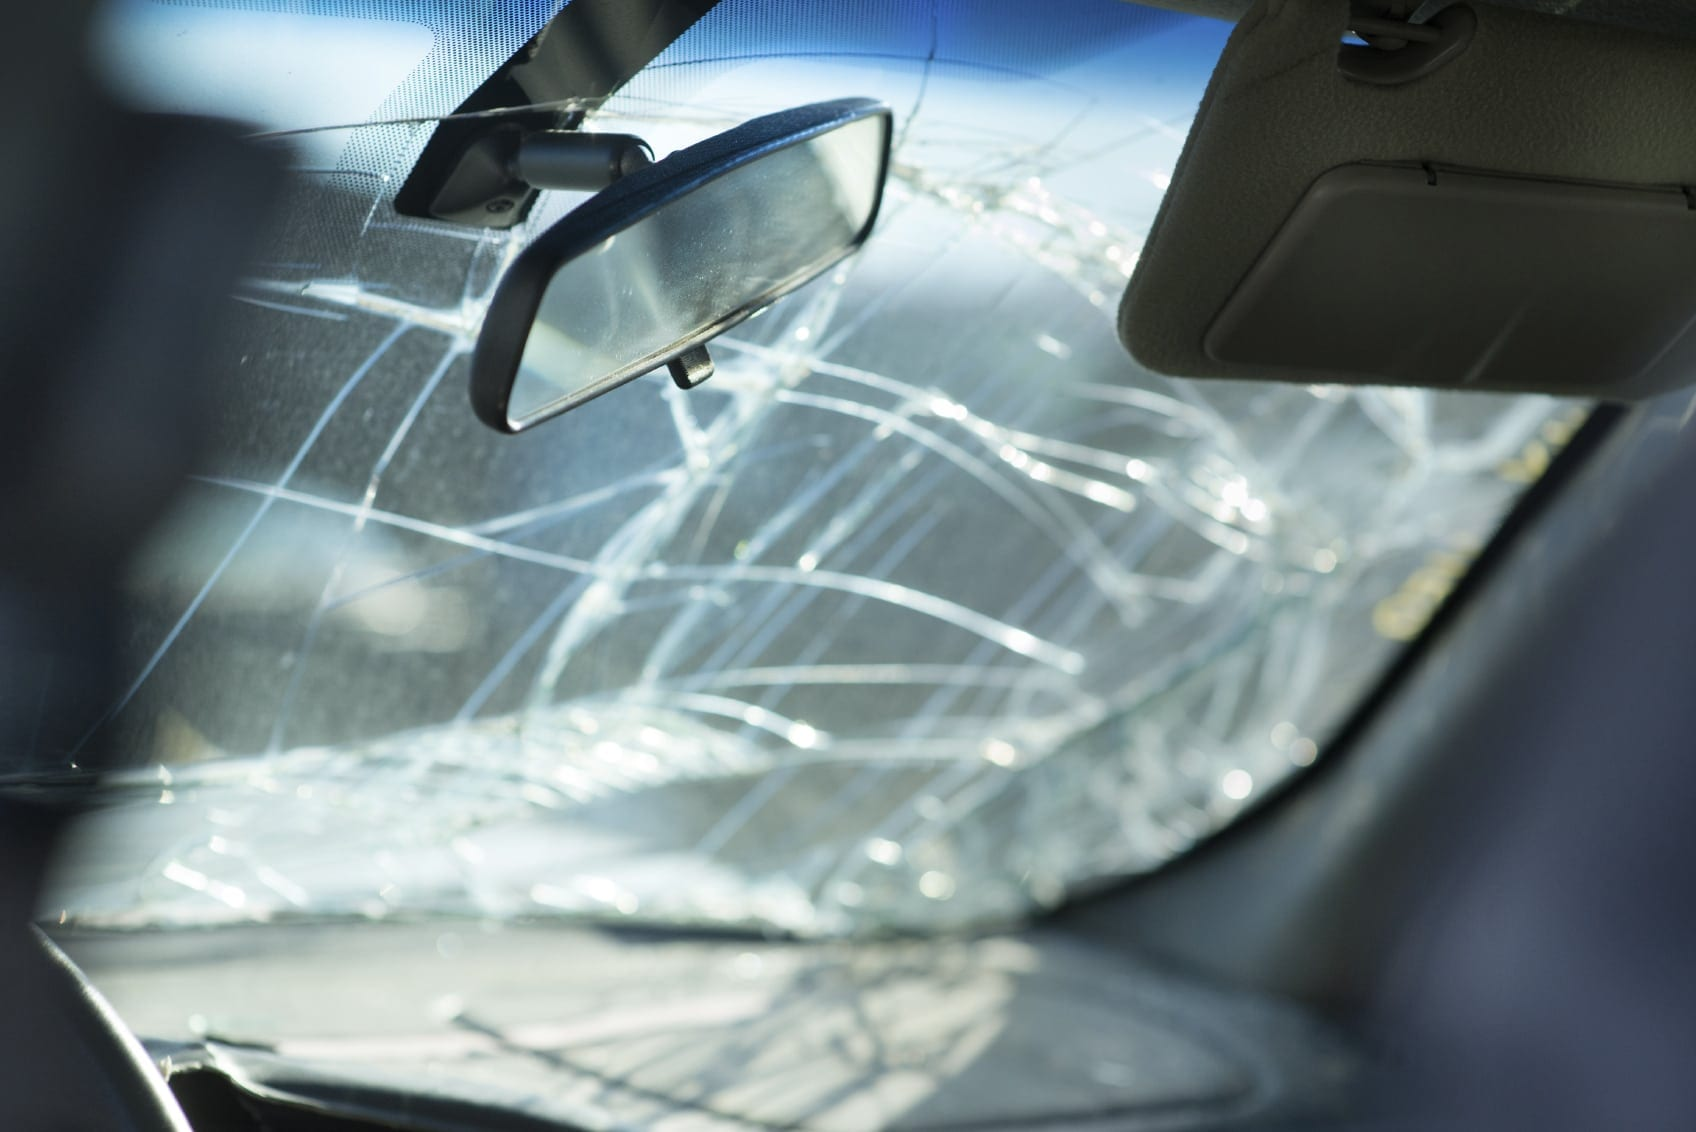 Car Accident With Windshield Damage Stock Photo